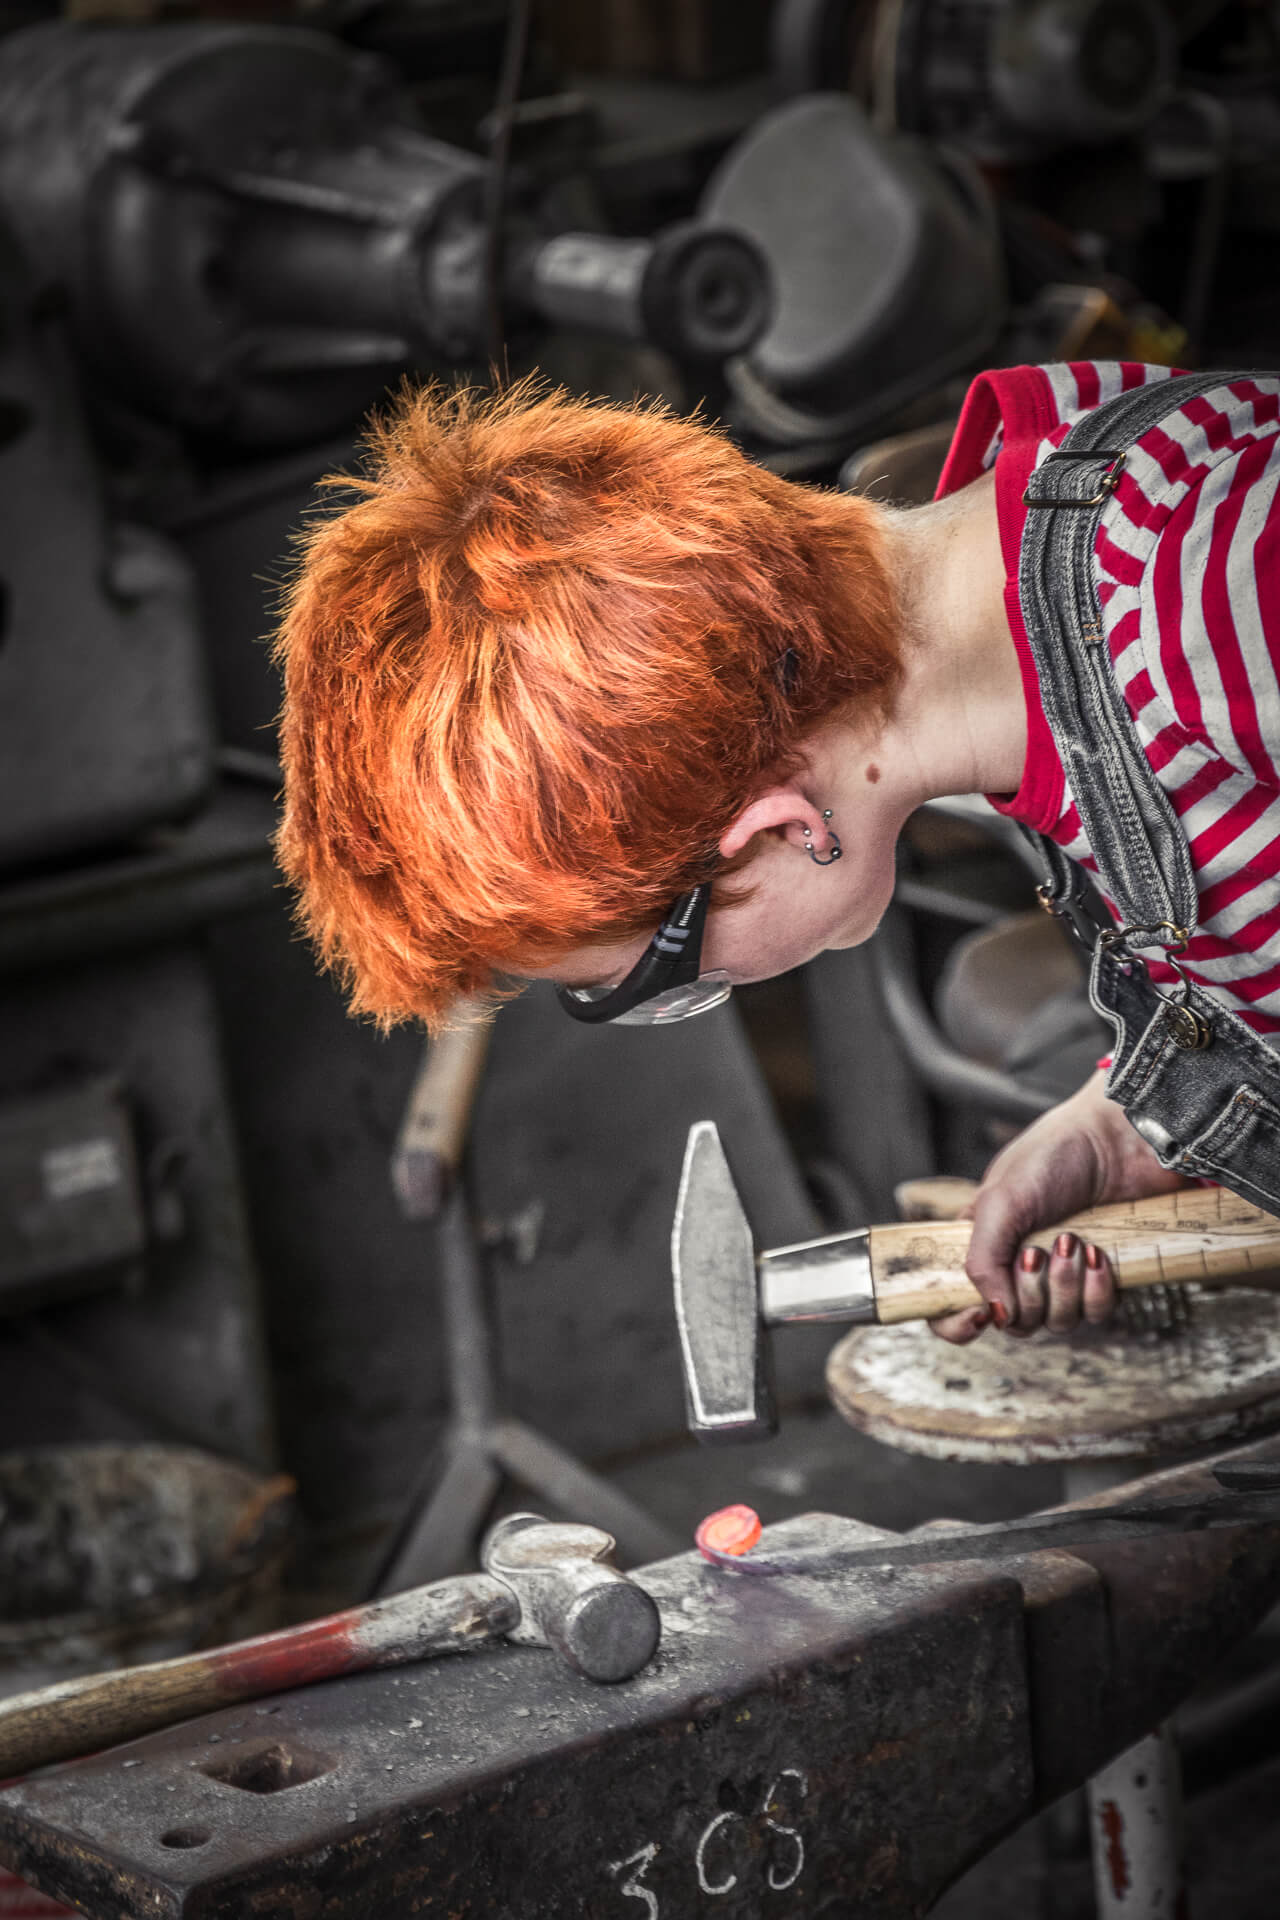 A close up colour image of female blacksmith working red hot metal at a traditional anvil with a traditional blacksmiths hammer. She wears dungarees & protective glasses. She has very short ginger spikey hair and strangely, painted nails!